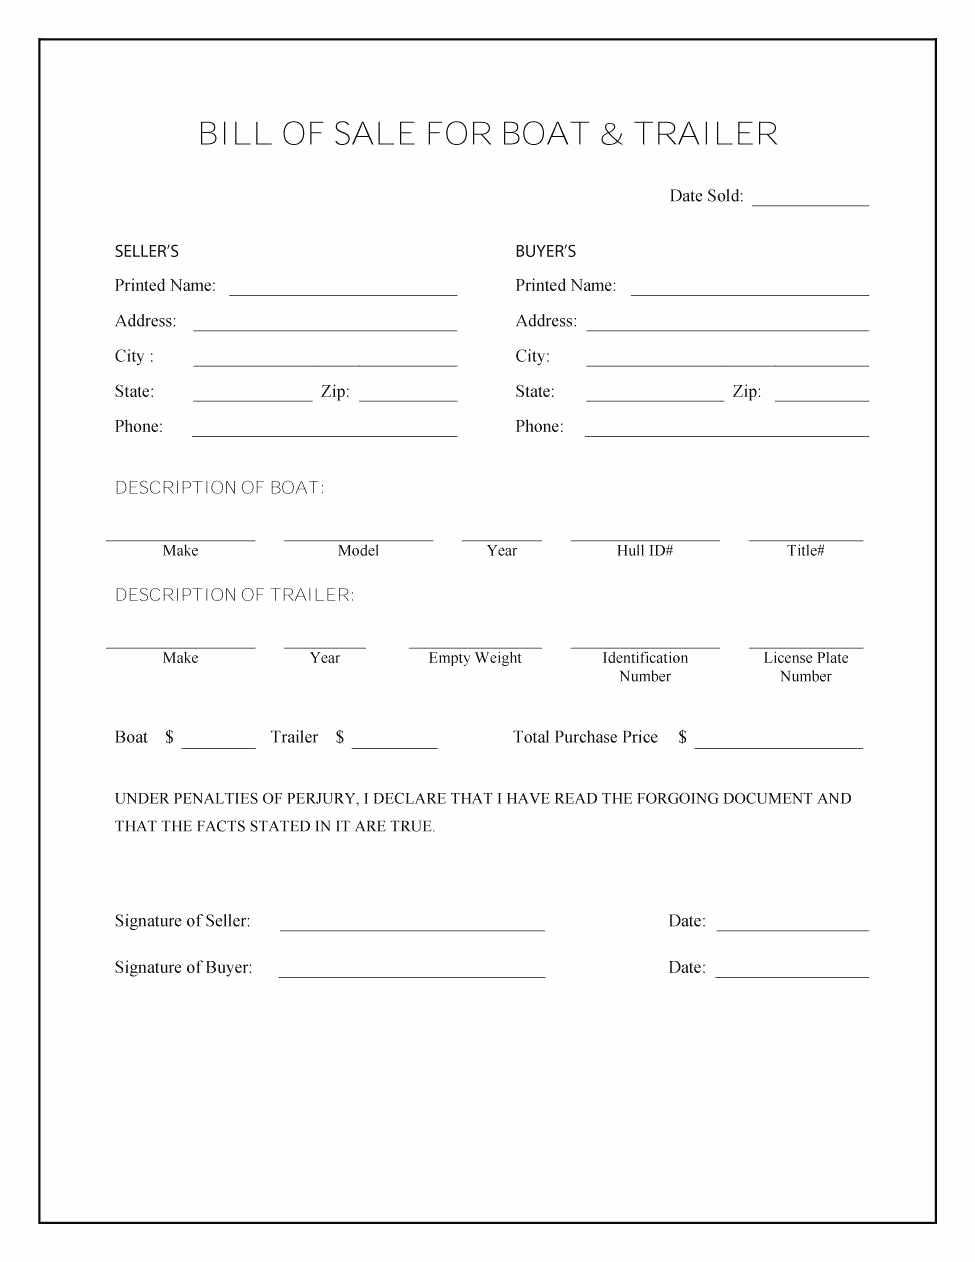 Bill Of Sale Fillable Pdf New Vehicle Bill Sale Template Fillable Pdf Lovely Free